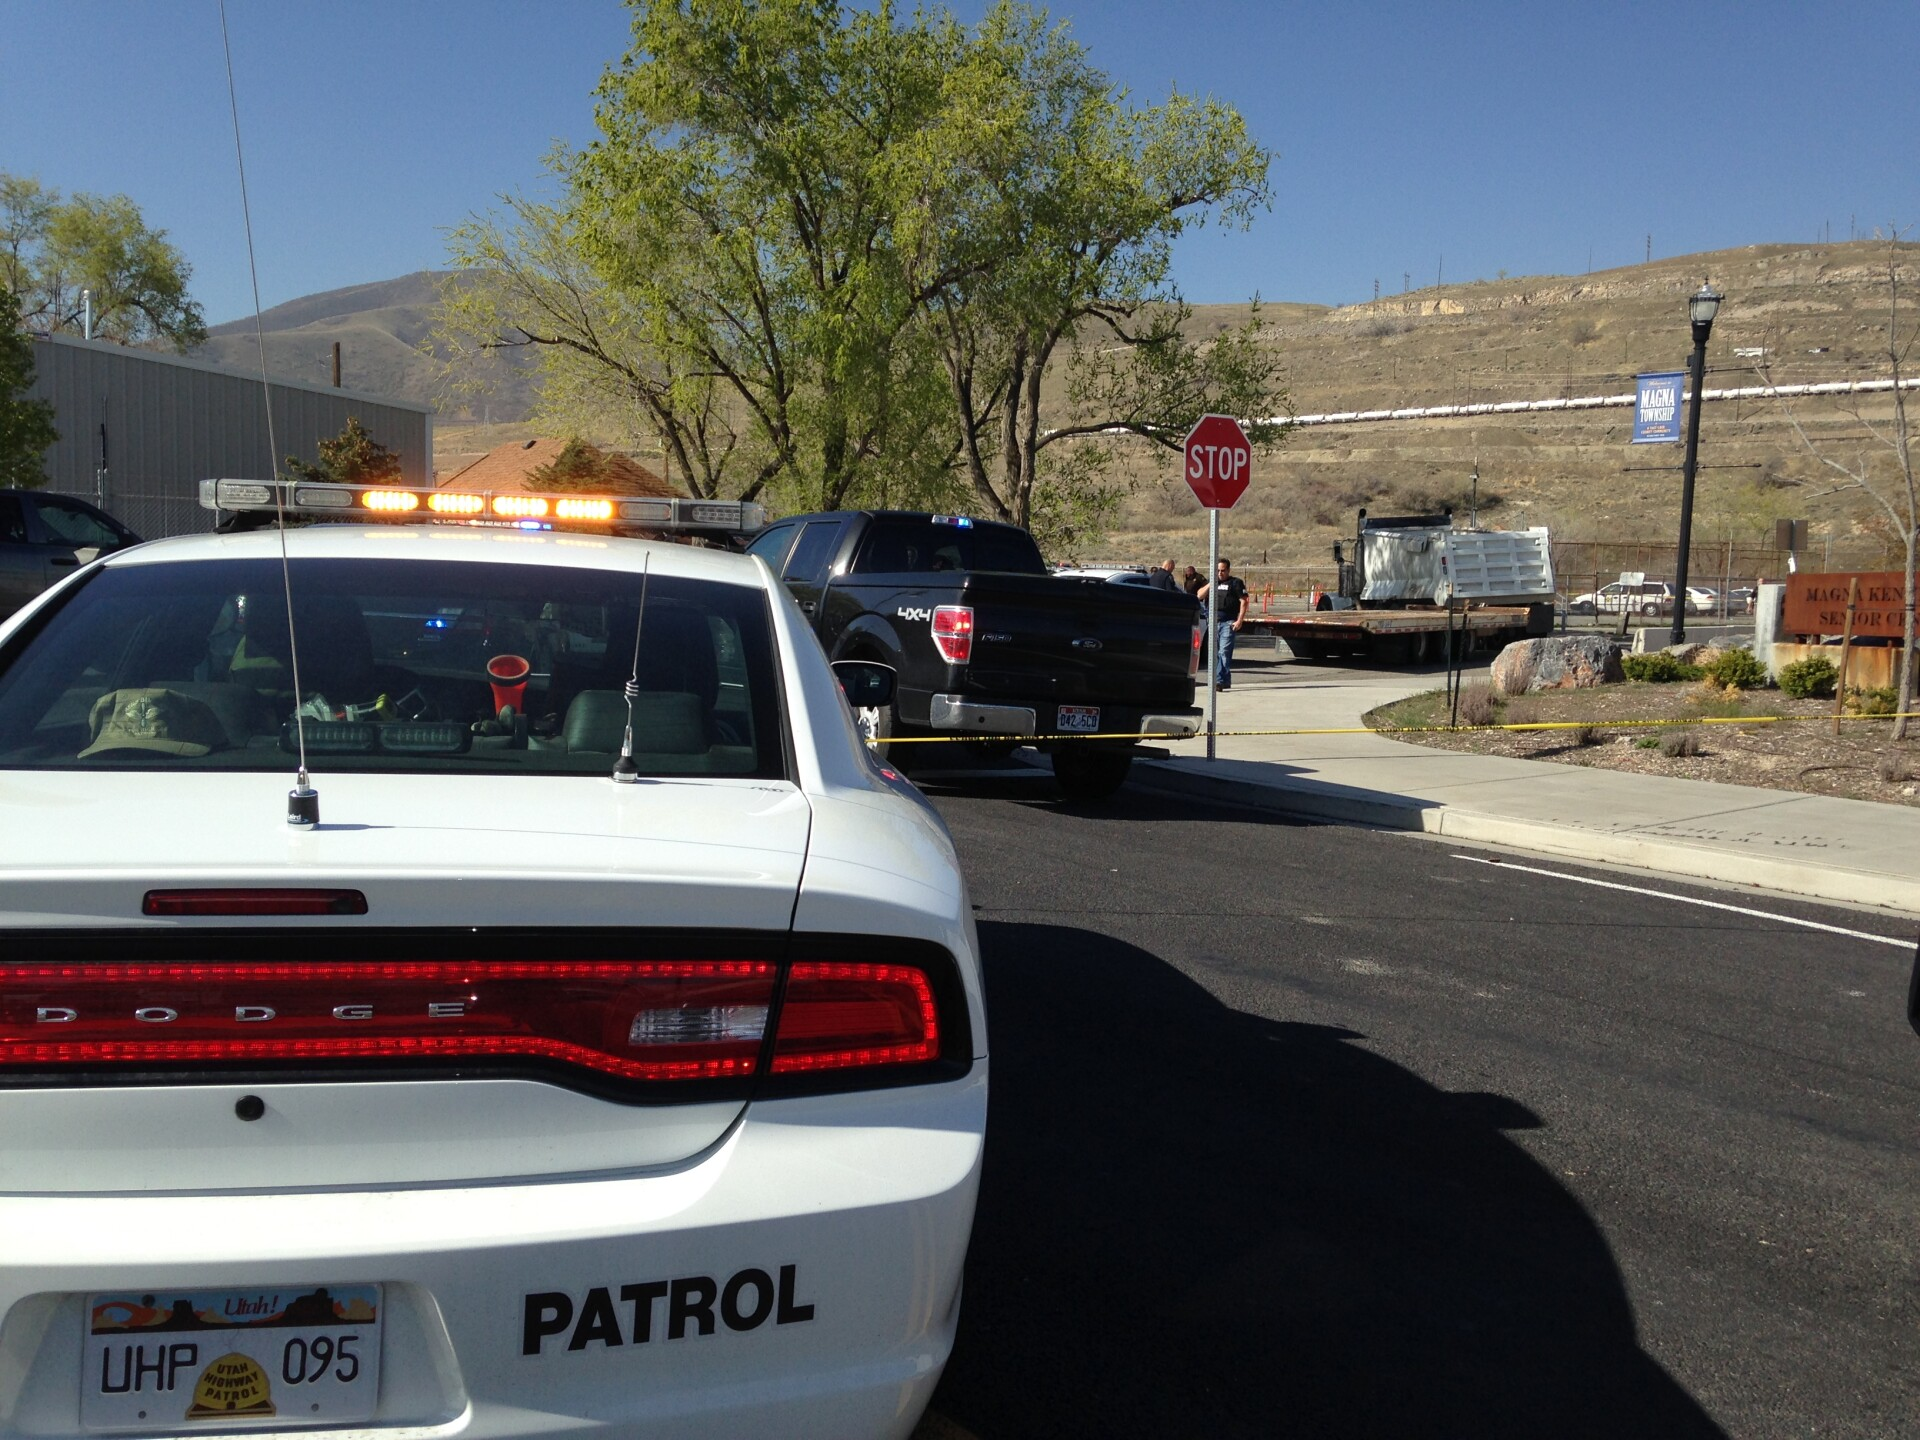 Photos: Dump truck police chase ends with spike strips, pepper spray; incident caught oncamera